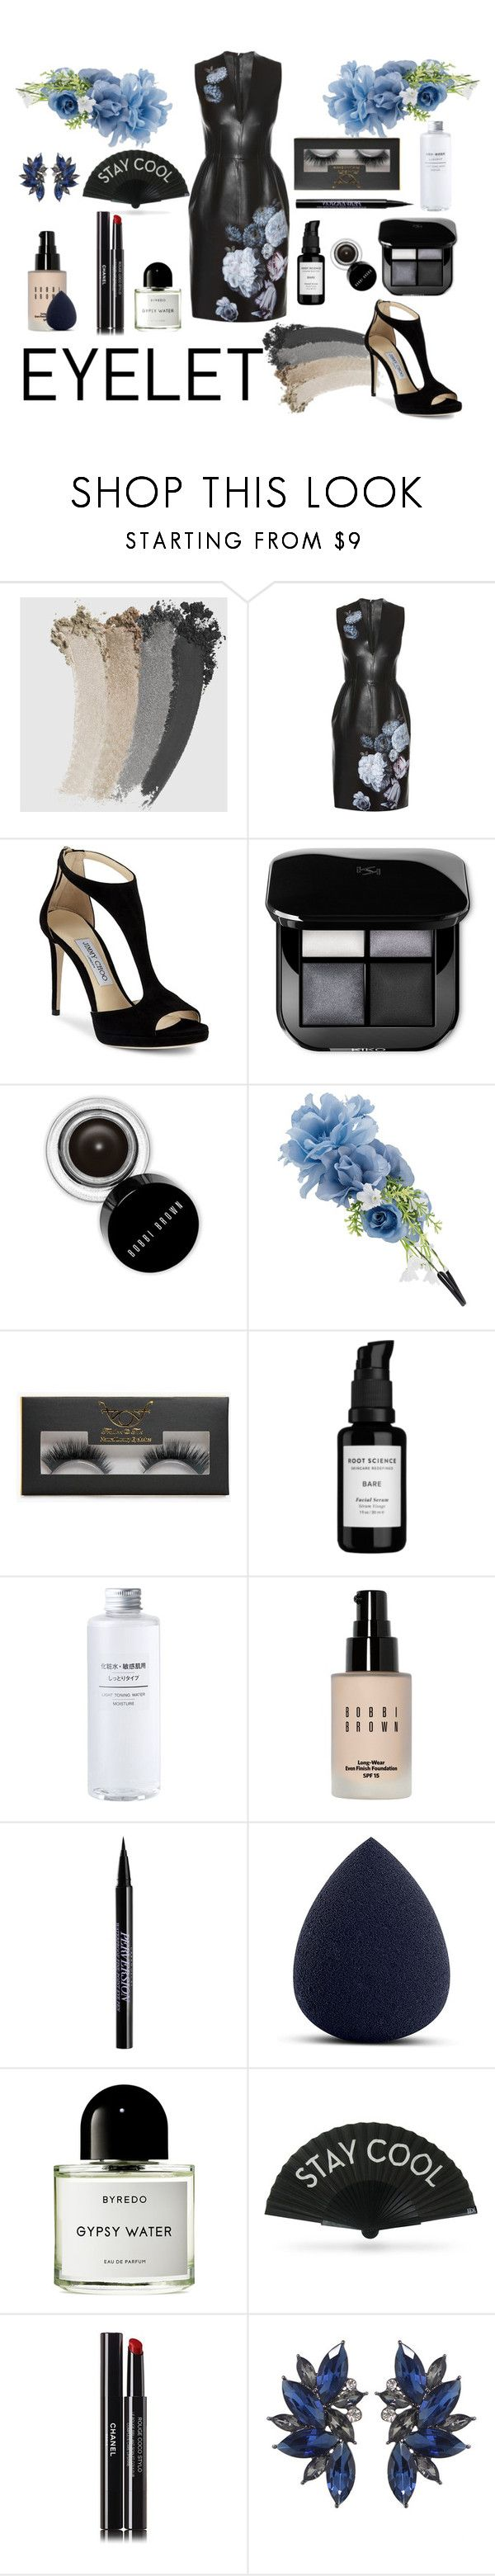 """The eyelet😏 Happy hour✨"" by juliamariemcmahon ❤ liked on Polyvore featuring Gucci, Alexander McQueen, Jimmy Choo, Bobbi Brown Cosmetics, Accessorize, Boohoo, Root Science, Urban Decay, My Makeup Brush Set and Byredo"